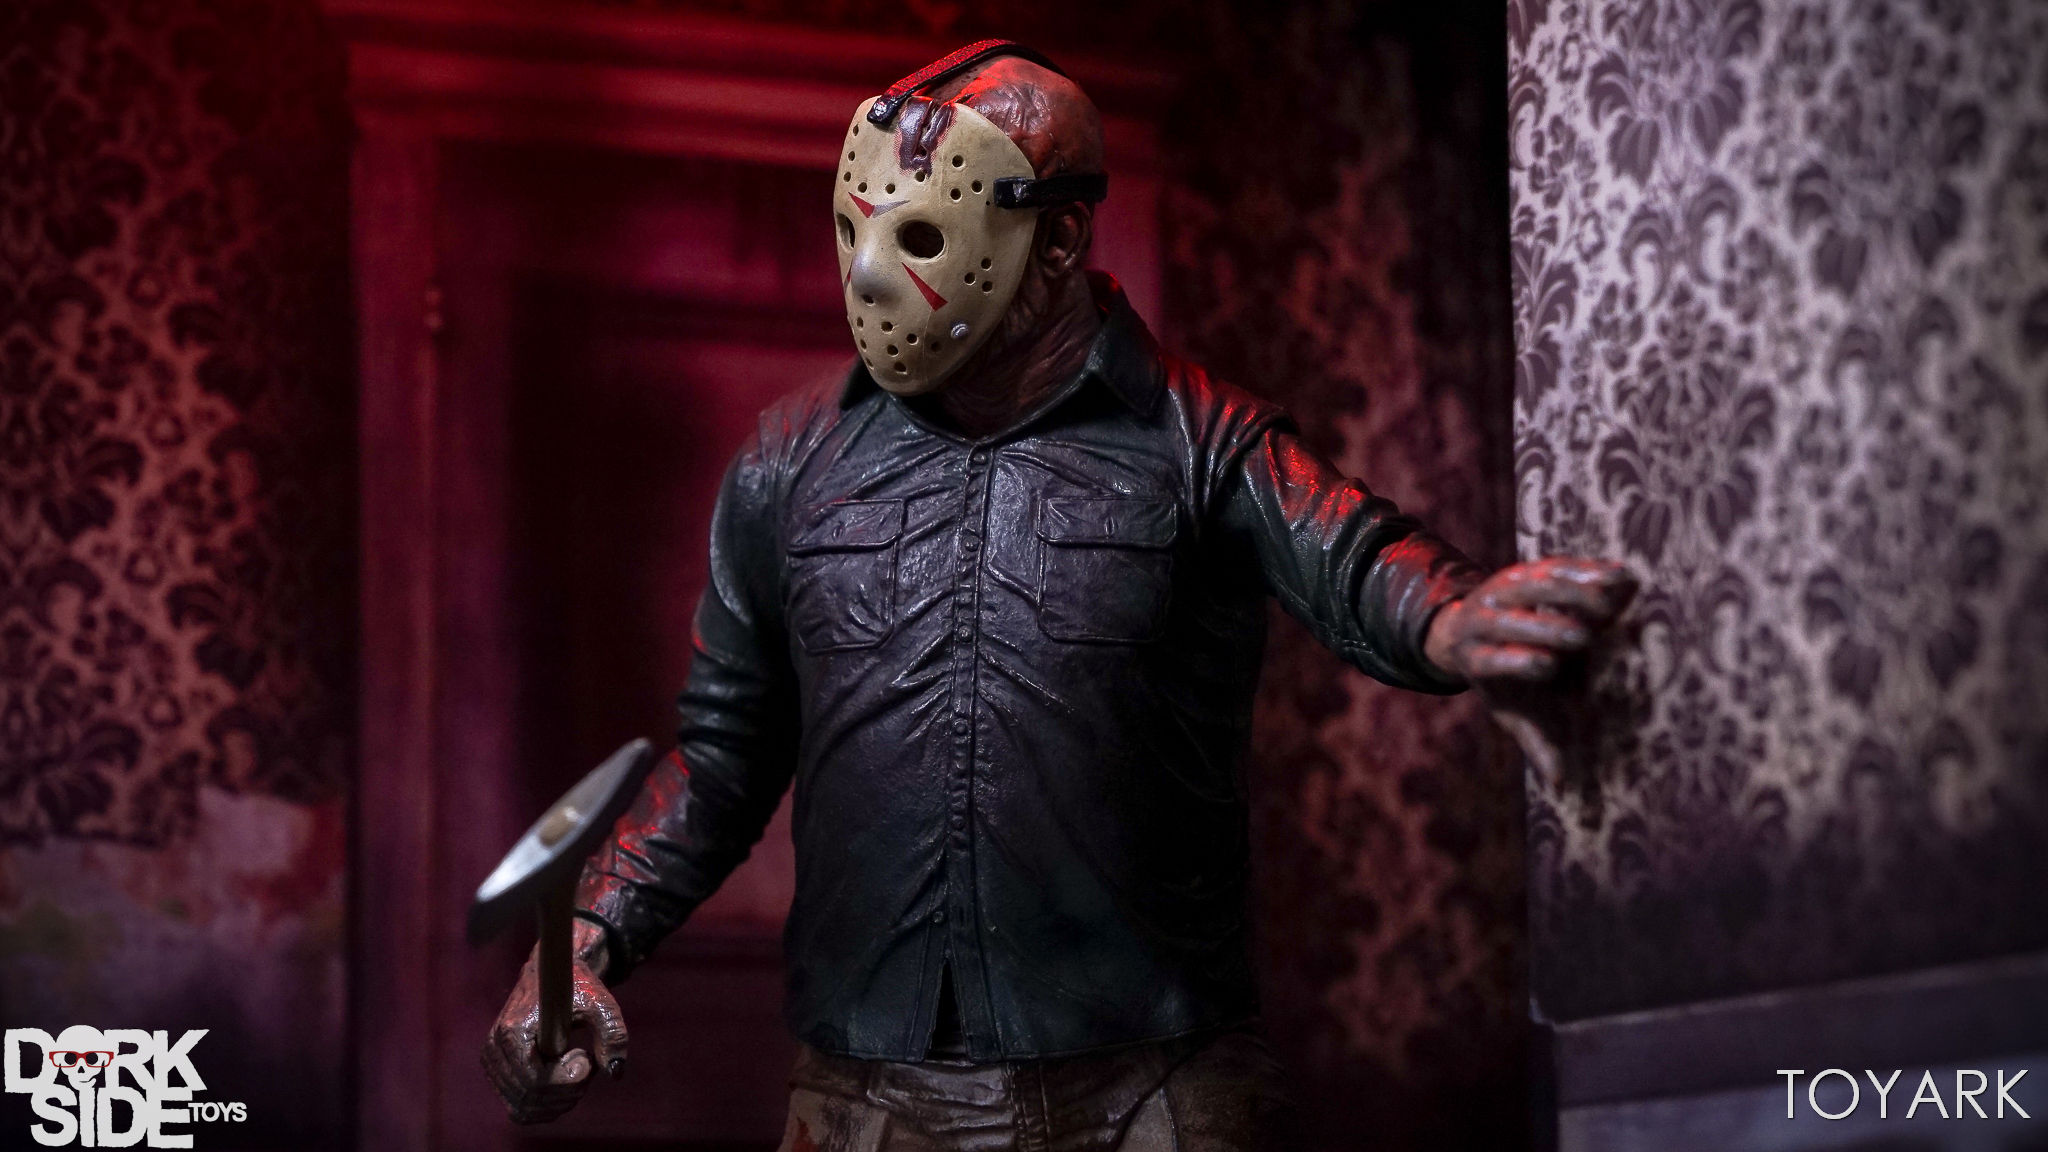 http://news.toyark.com/wp-content/uploads/sites/4/2017/06/Jason-Voorhees-Final-Chapter-Ultimate-035.jpg